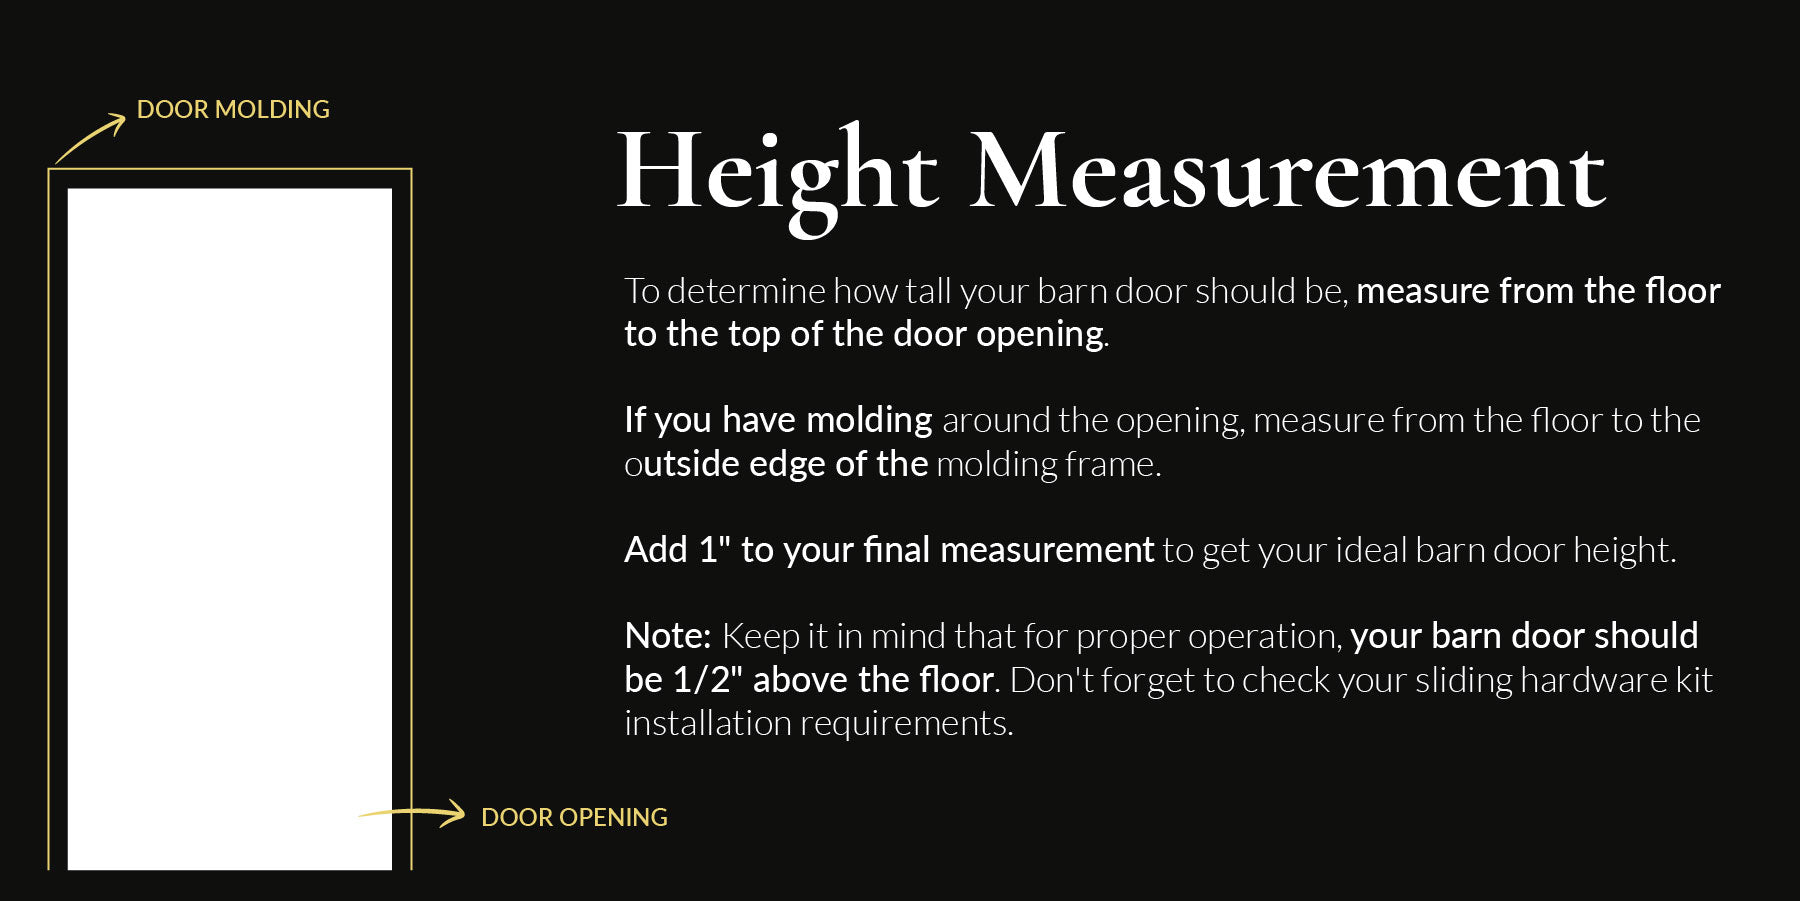 How to determine your barn door height illustration. Text one the image is the same as the text box below the image.